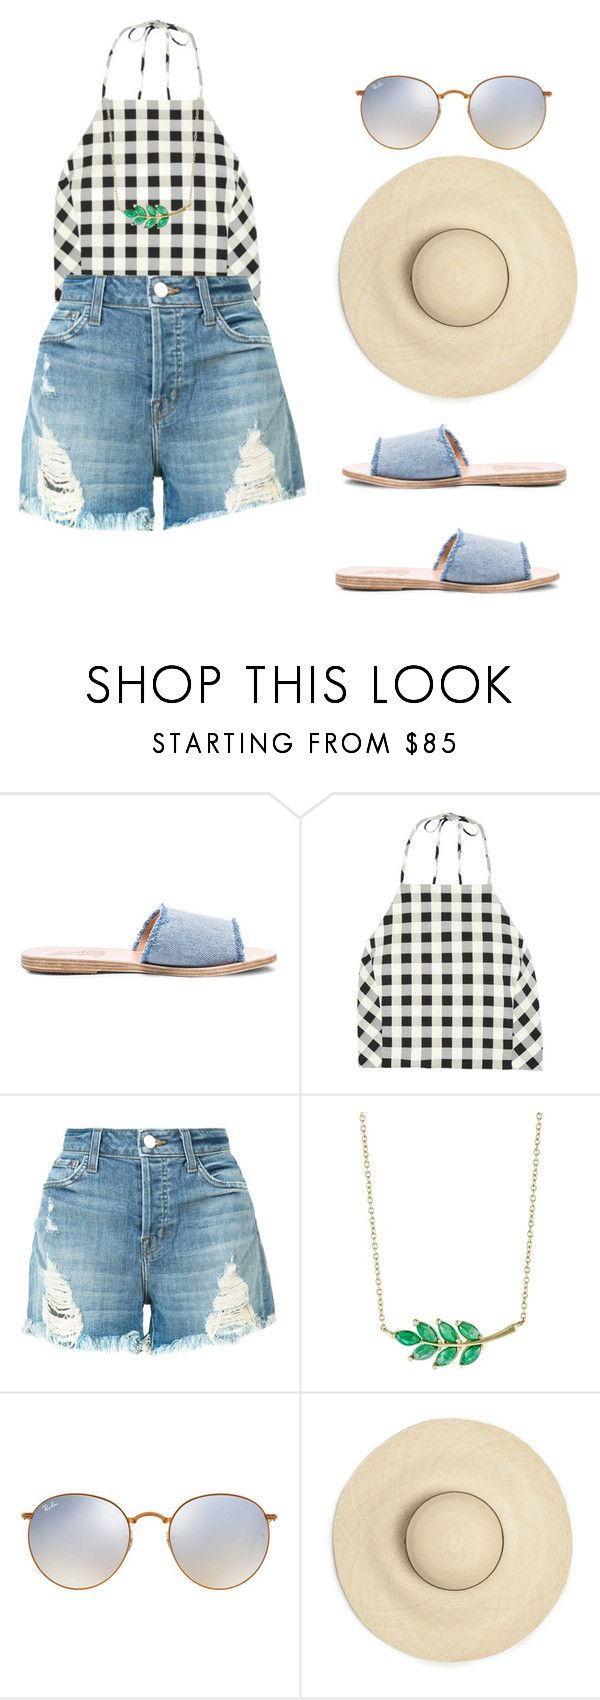 """""""Untitled #553"""" by crownof-floralbeauty19 ❤ liked on Polyvore featuring Ancient Greek Sandals, rag & bone, J Brand, Finn and Ray-Ban"""